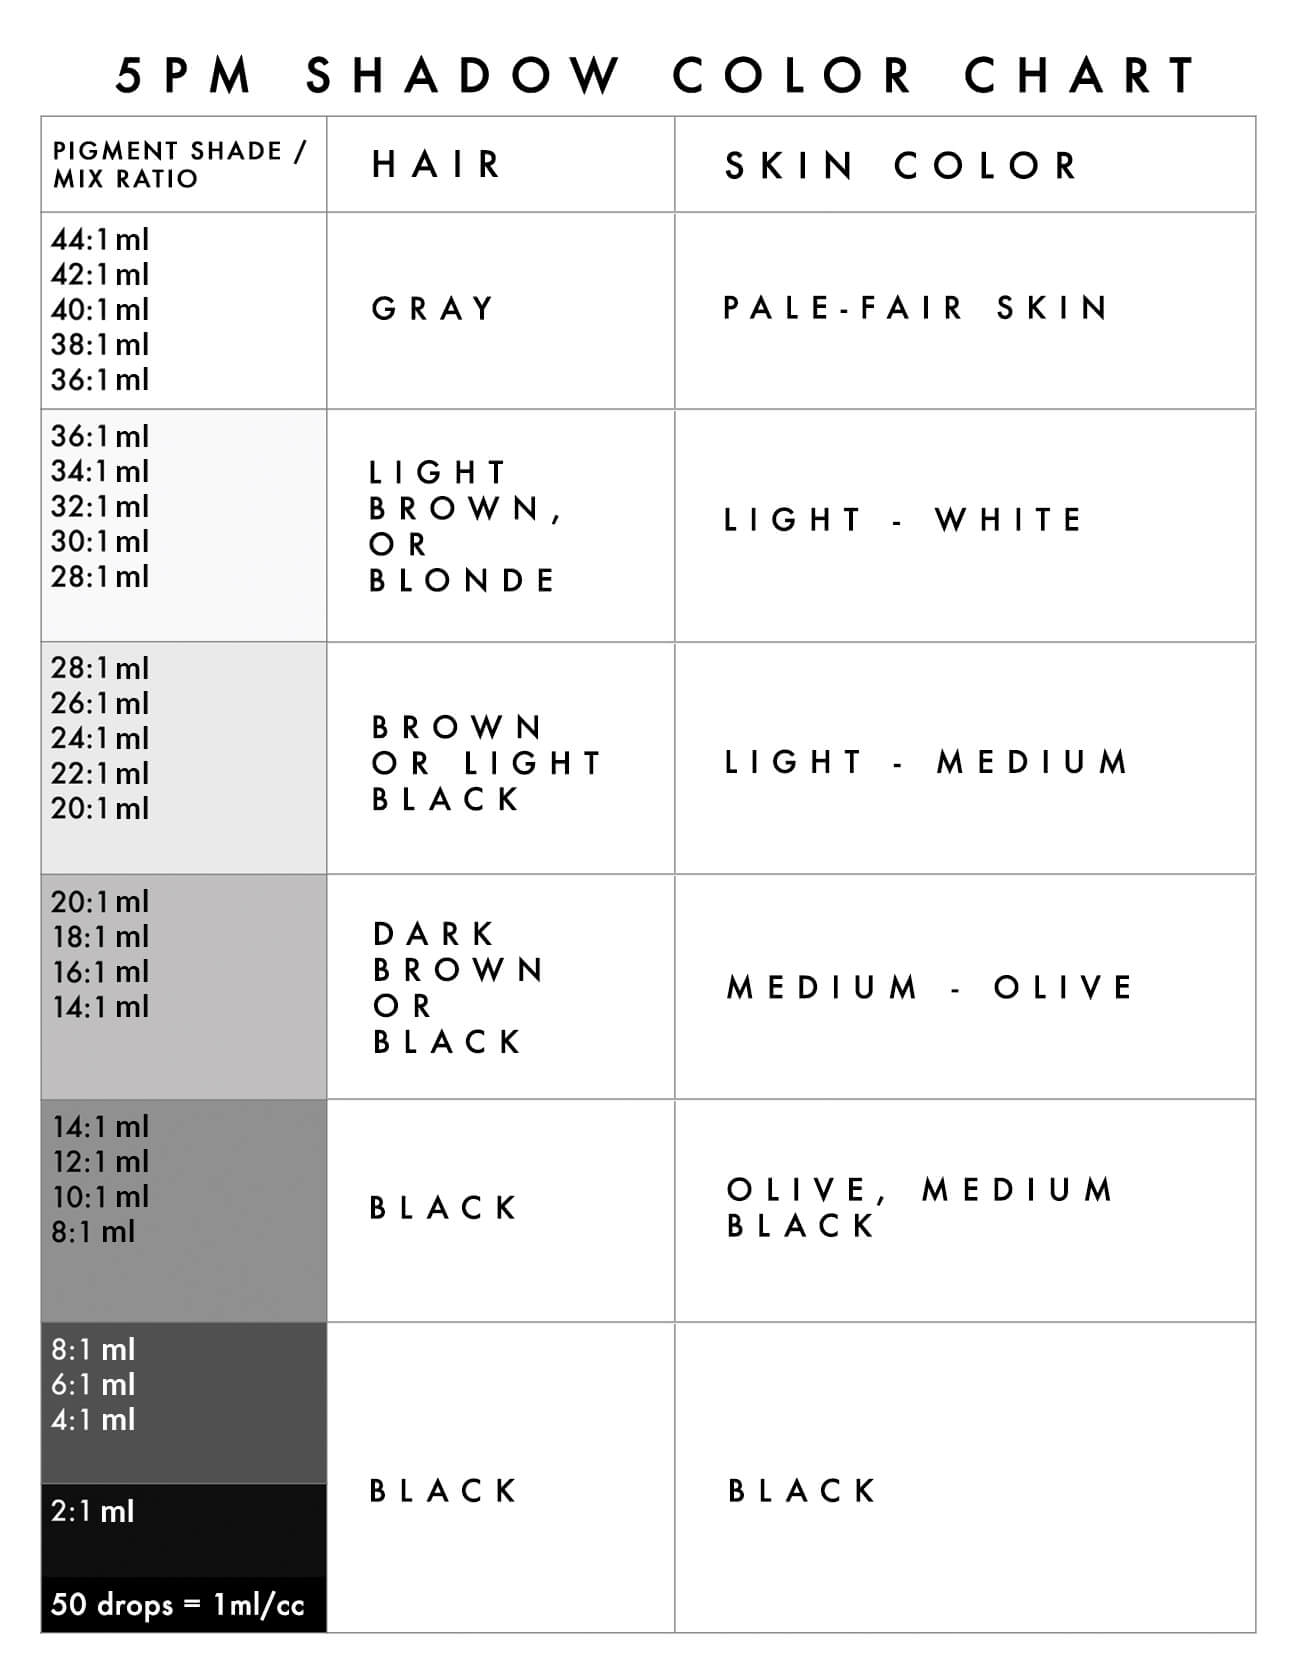 5pm Shadow Color Chart